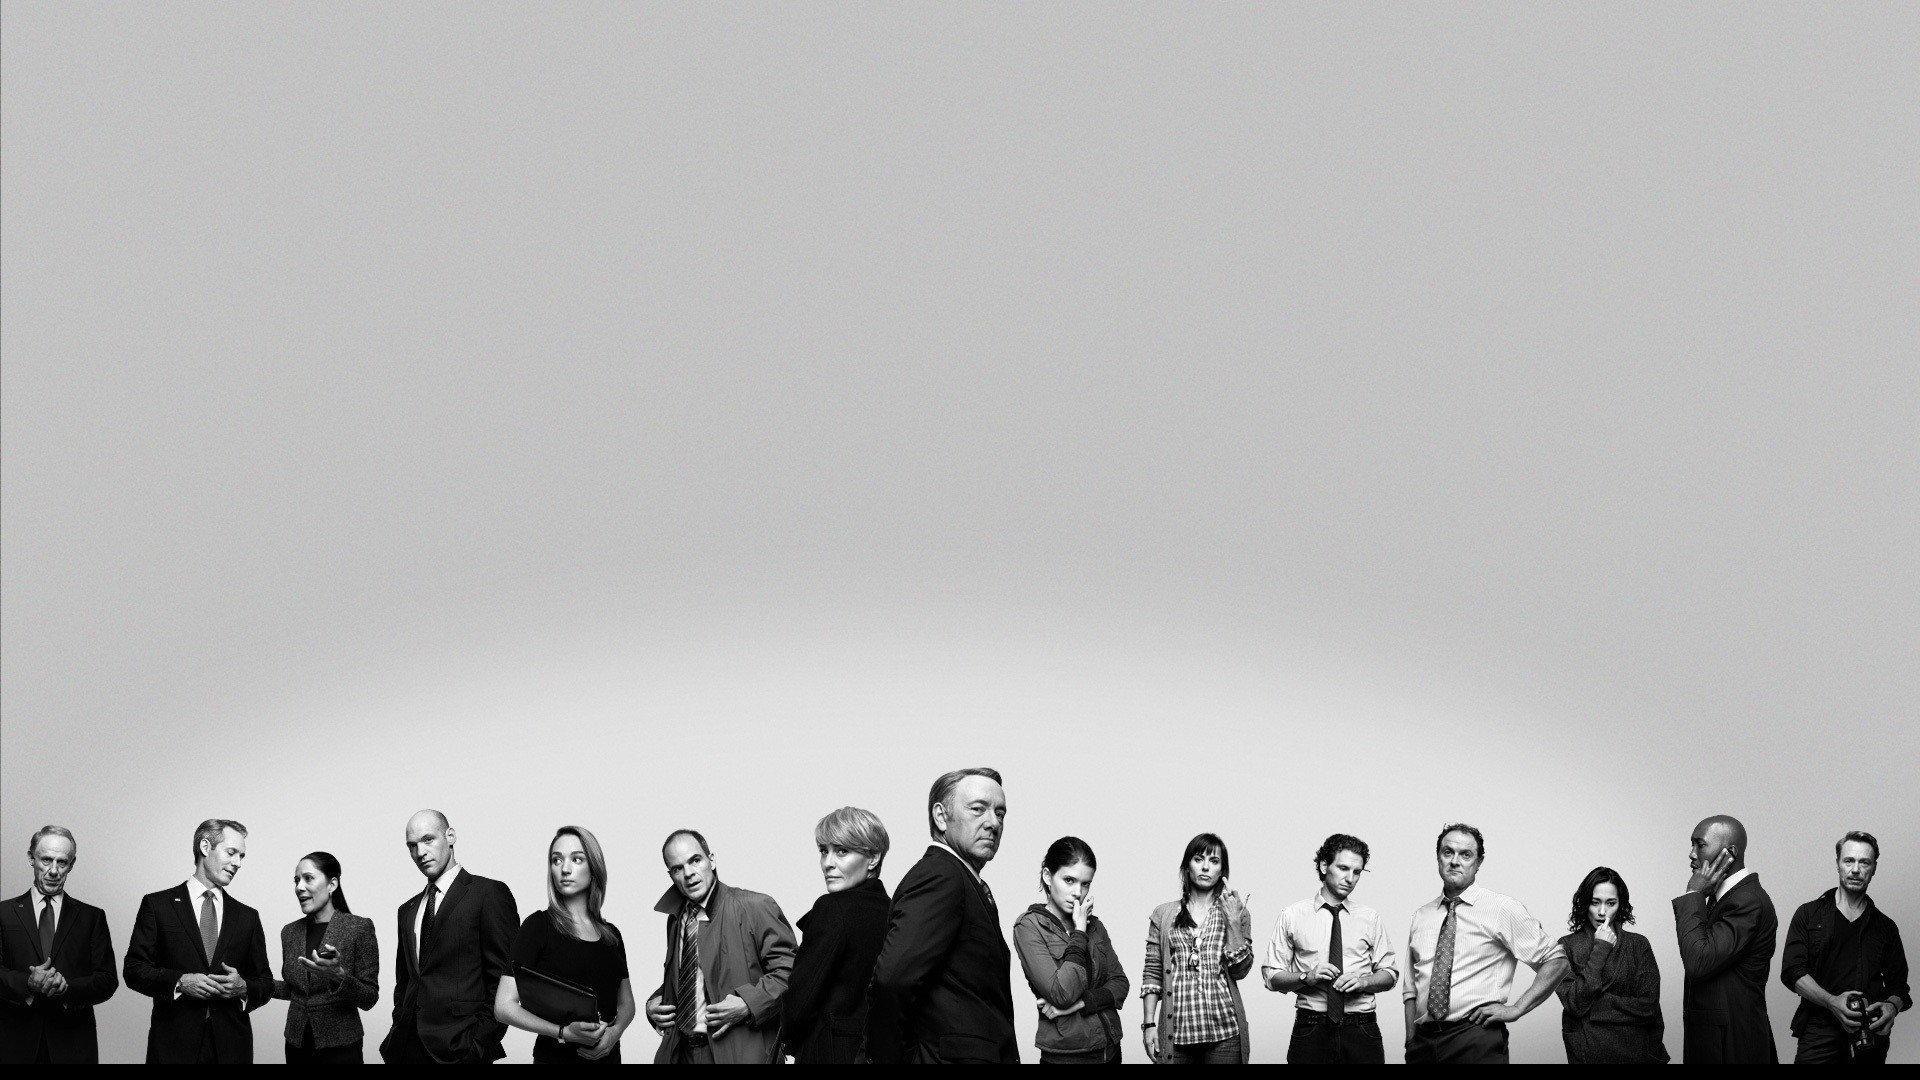 House Of Cards - House Of Cards Wallpaper Phrases , HD Wallpaper & Backgrounds